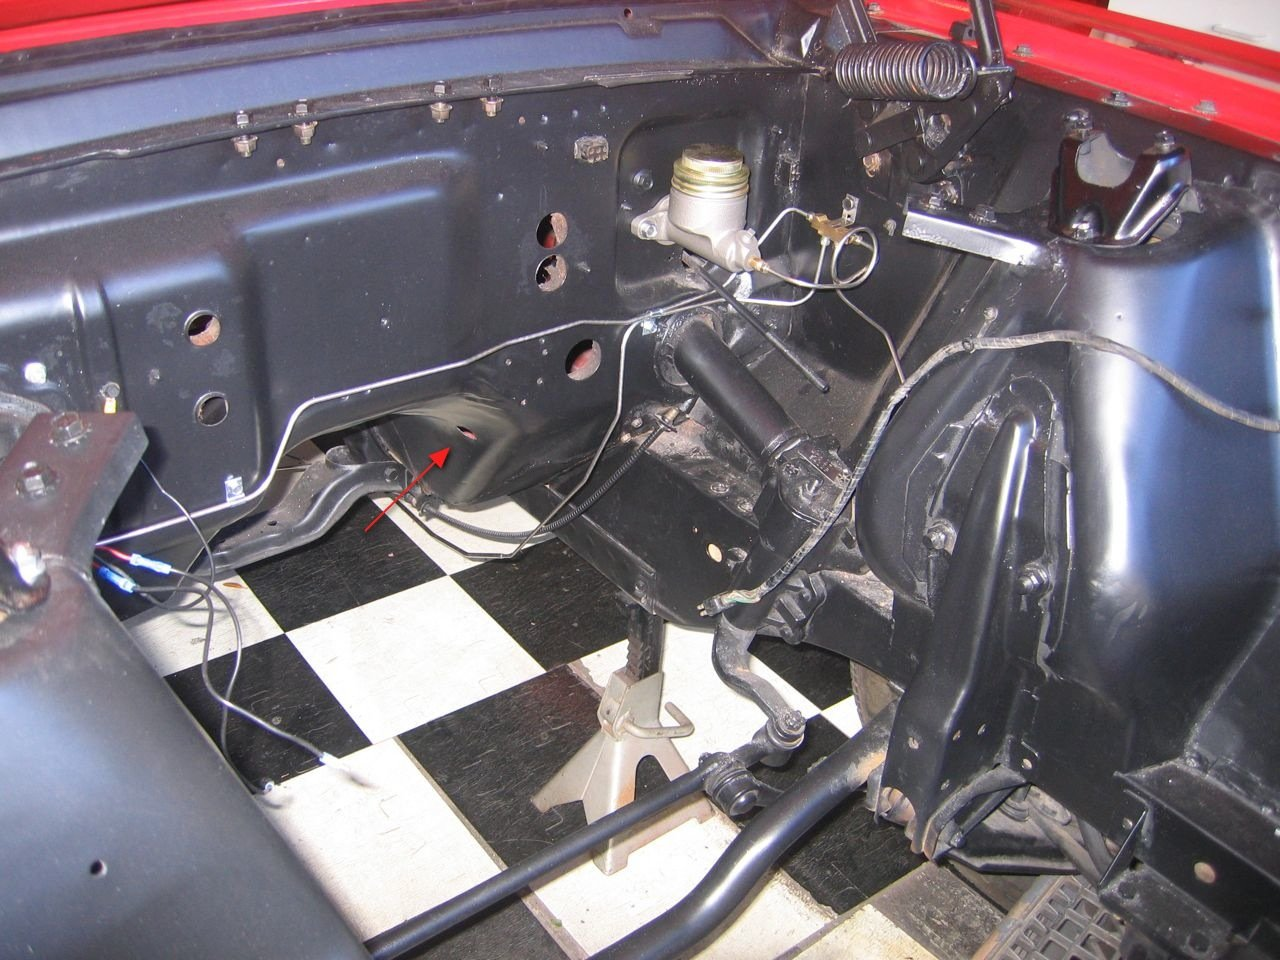 light switch wiring diagram 1968 mustang 66 fastback speedometer cable ford    mustang    forum  66 fastback speedometer cable ford    mustang    forum